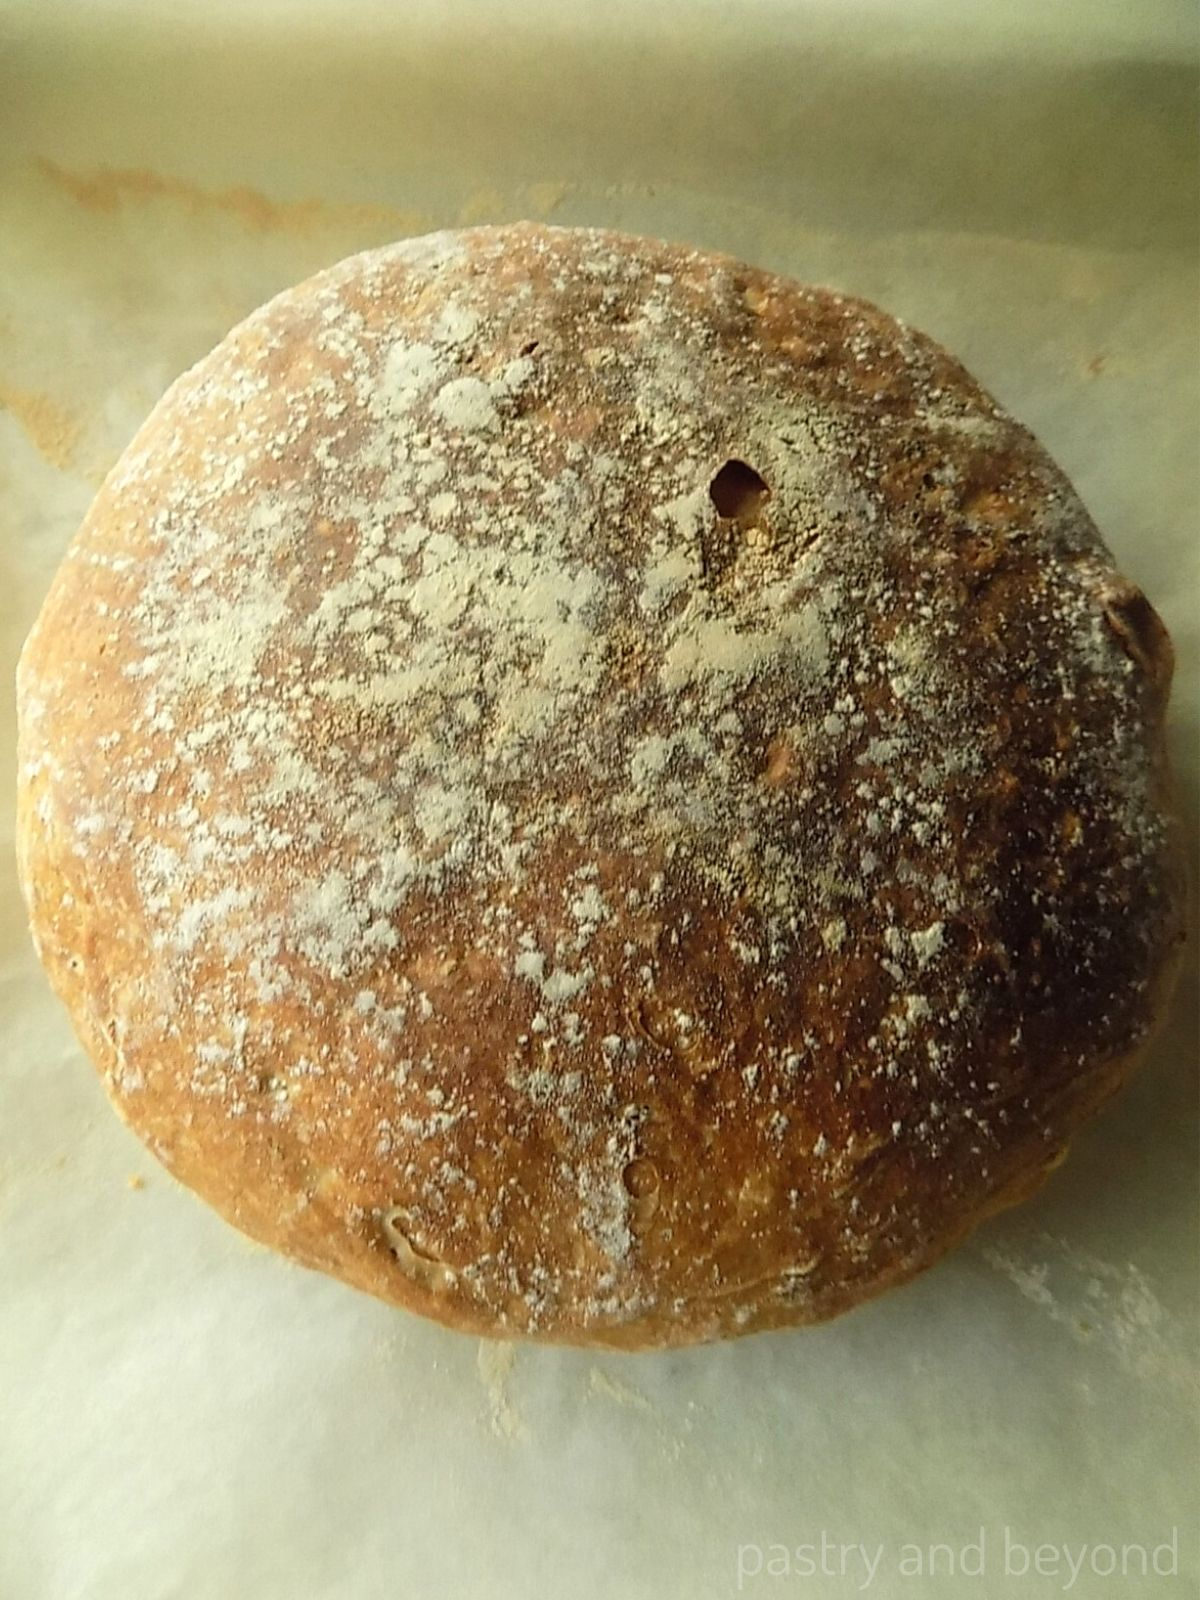 Round no knead bread that is baked without dutch oven on parchment paper.